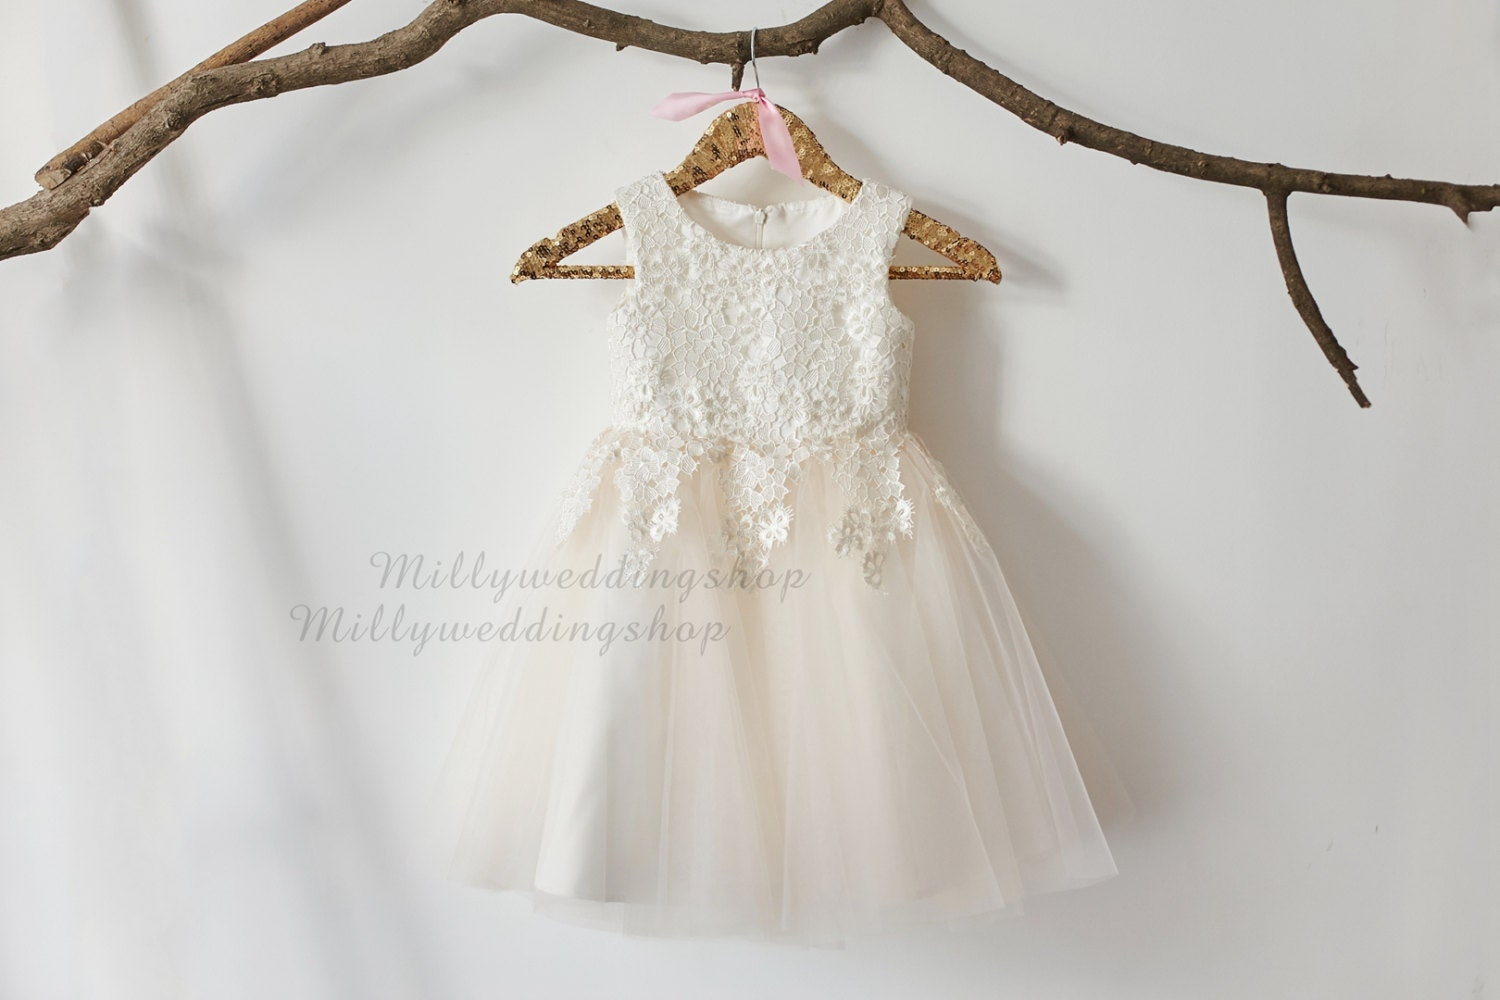 Ivory lace champagne tulle flower girl dress wedding for Flowers for champagne wedding dress